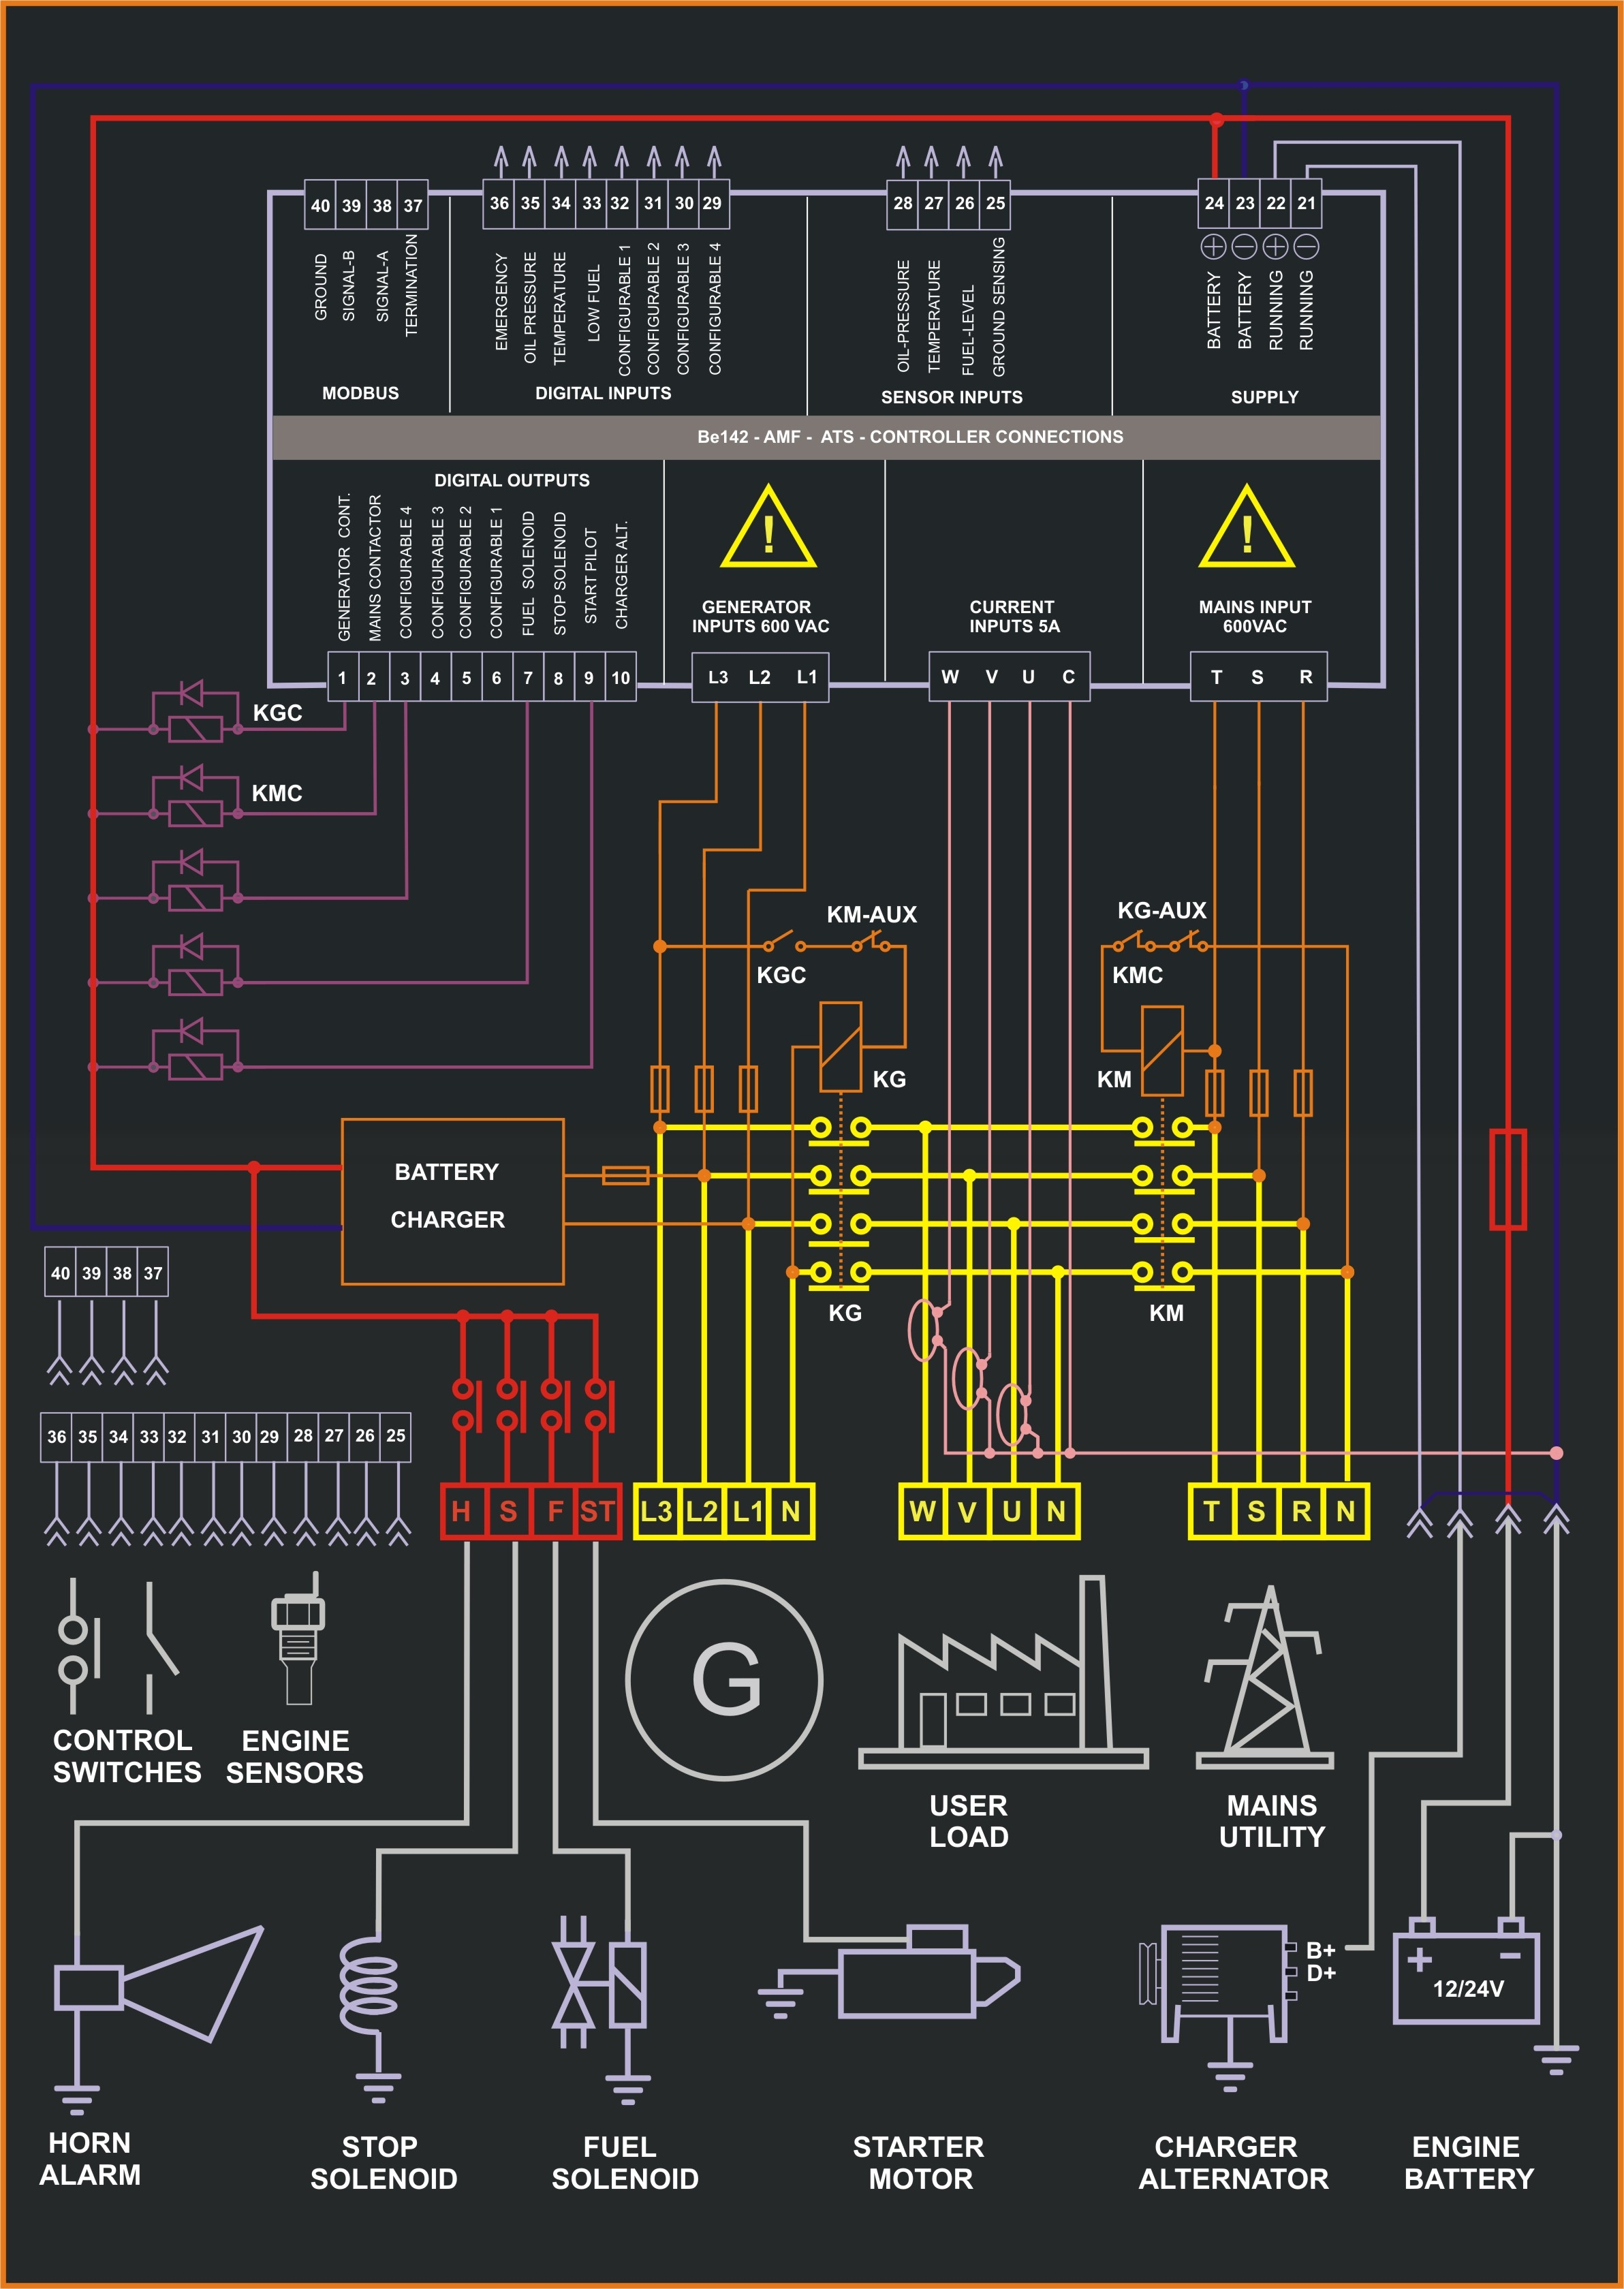 Control panel circuit diagram pdf control panel circuit diagram genset controller how to read control panel wiring diagrams pdf at soozxer.org